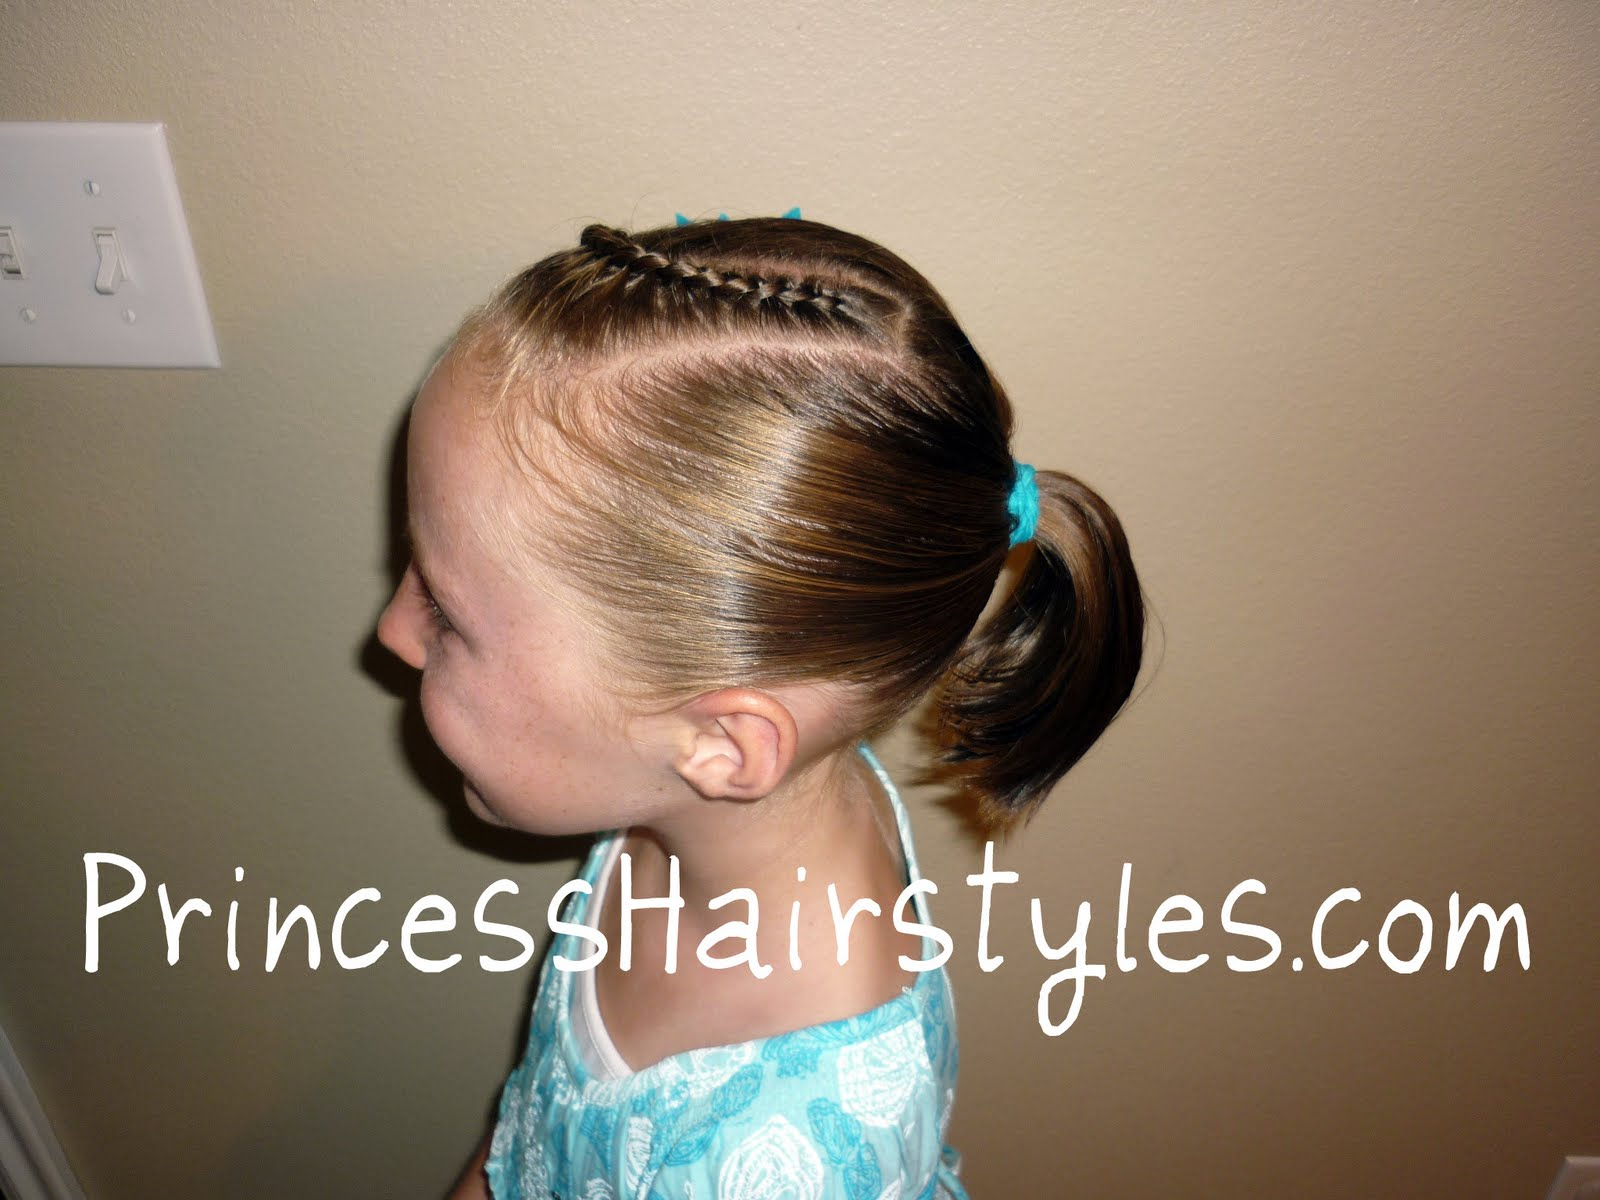 5 Minute Hairstyles Braids: Hairstyles For Girls